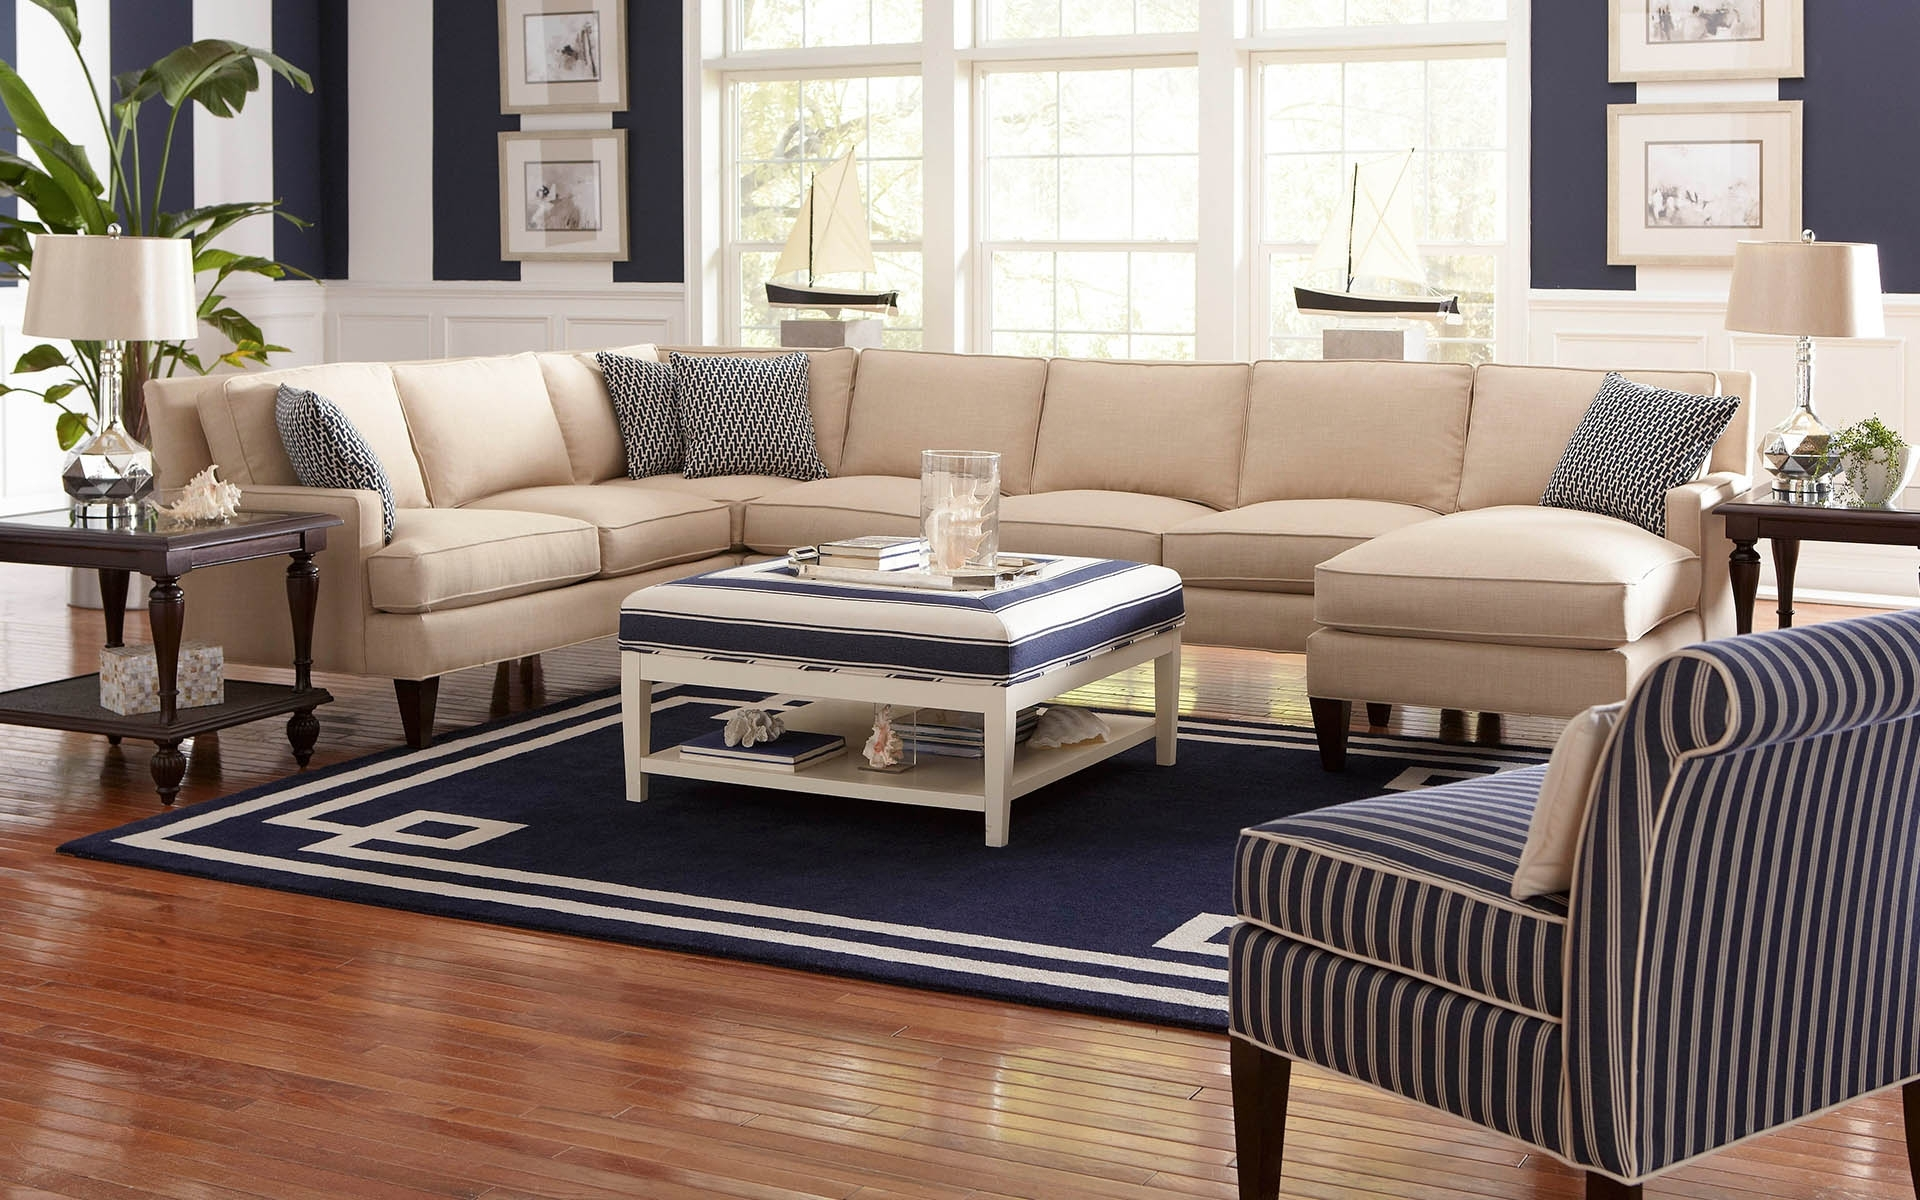 Trendy New Havertys Sectional Sofa 52 On Separate Sectional Sofa With Throughout Havertys Sectional Sofas (View 5 of 15)